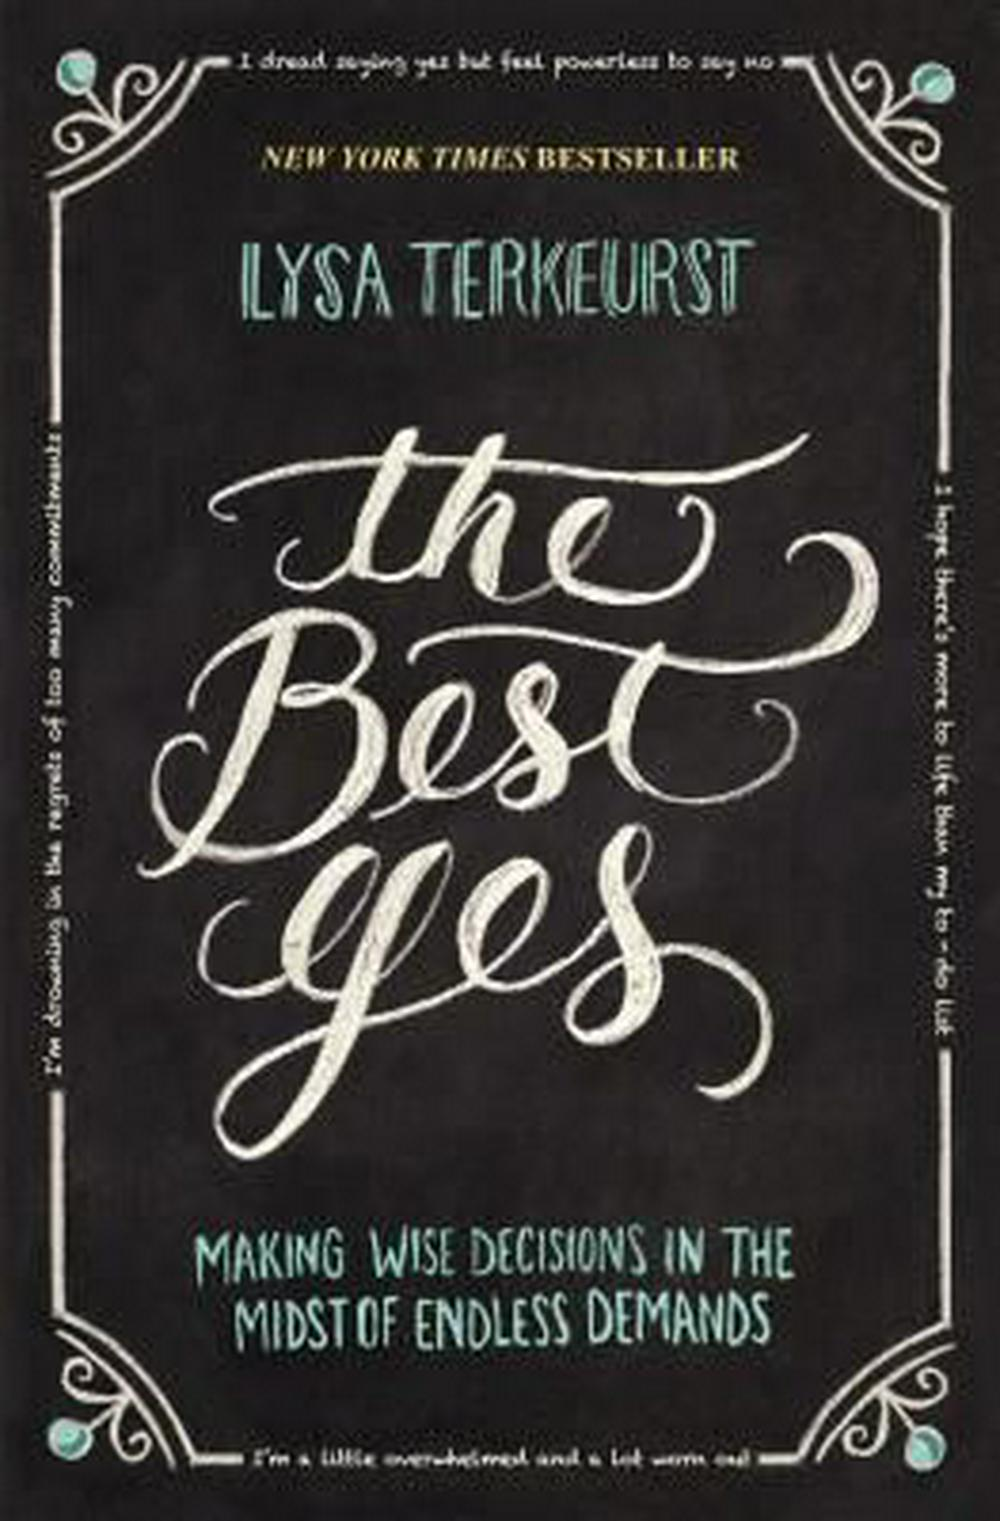 The Best Yes: Making Wise Decisions in the Midst of Endless Demands by Lysa TerKeurst, ISBN: 9781400205851